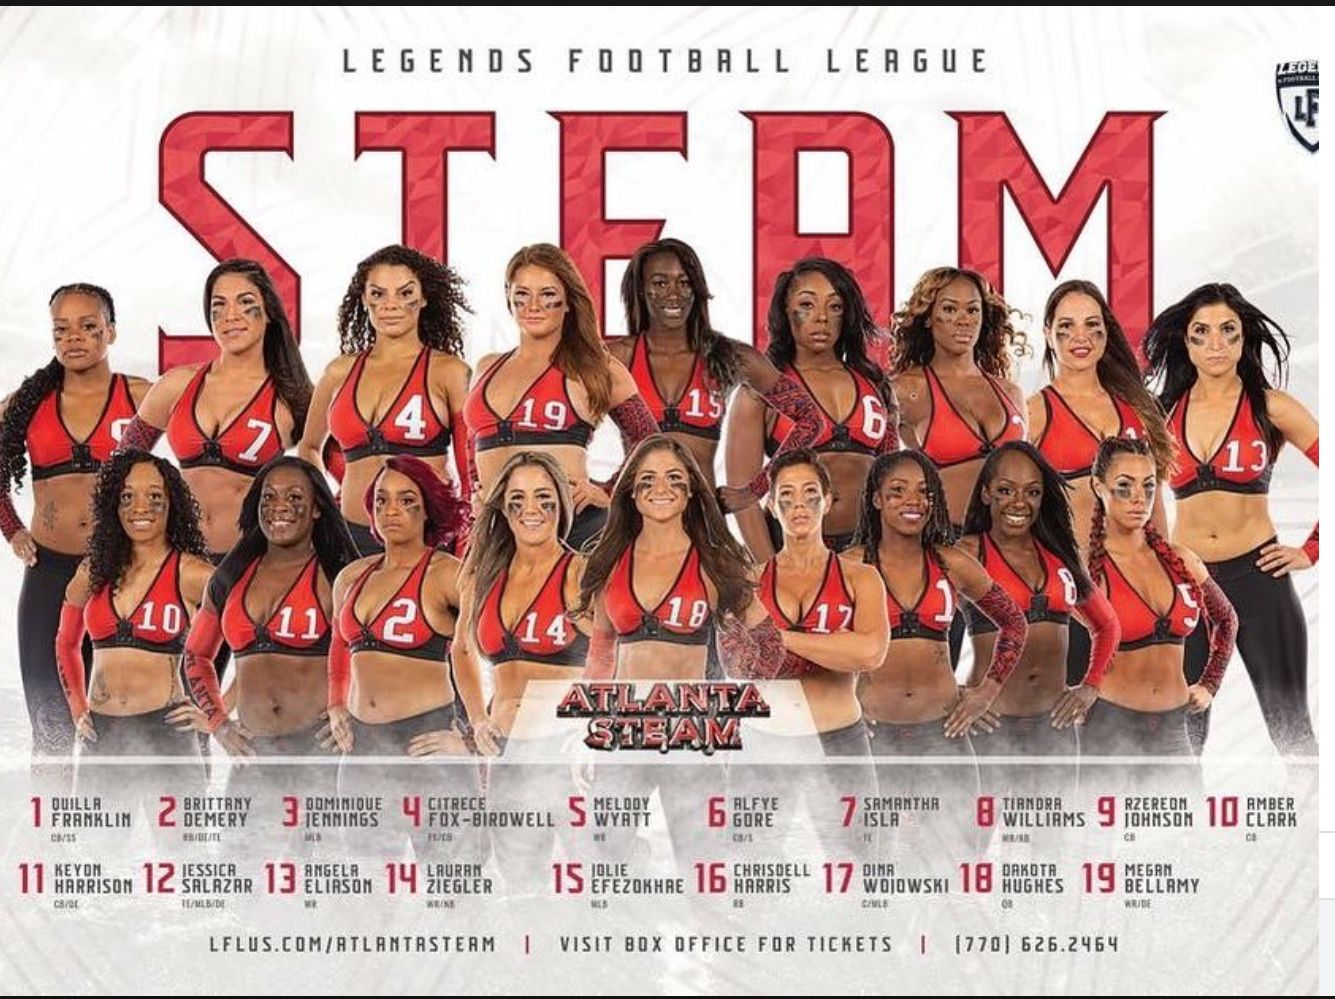 Pin By Dvus One On Legends Football League Lfl Players Legends Football Football League